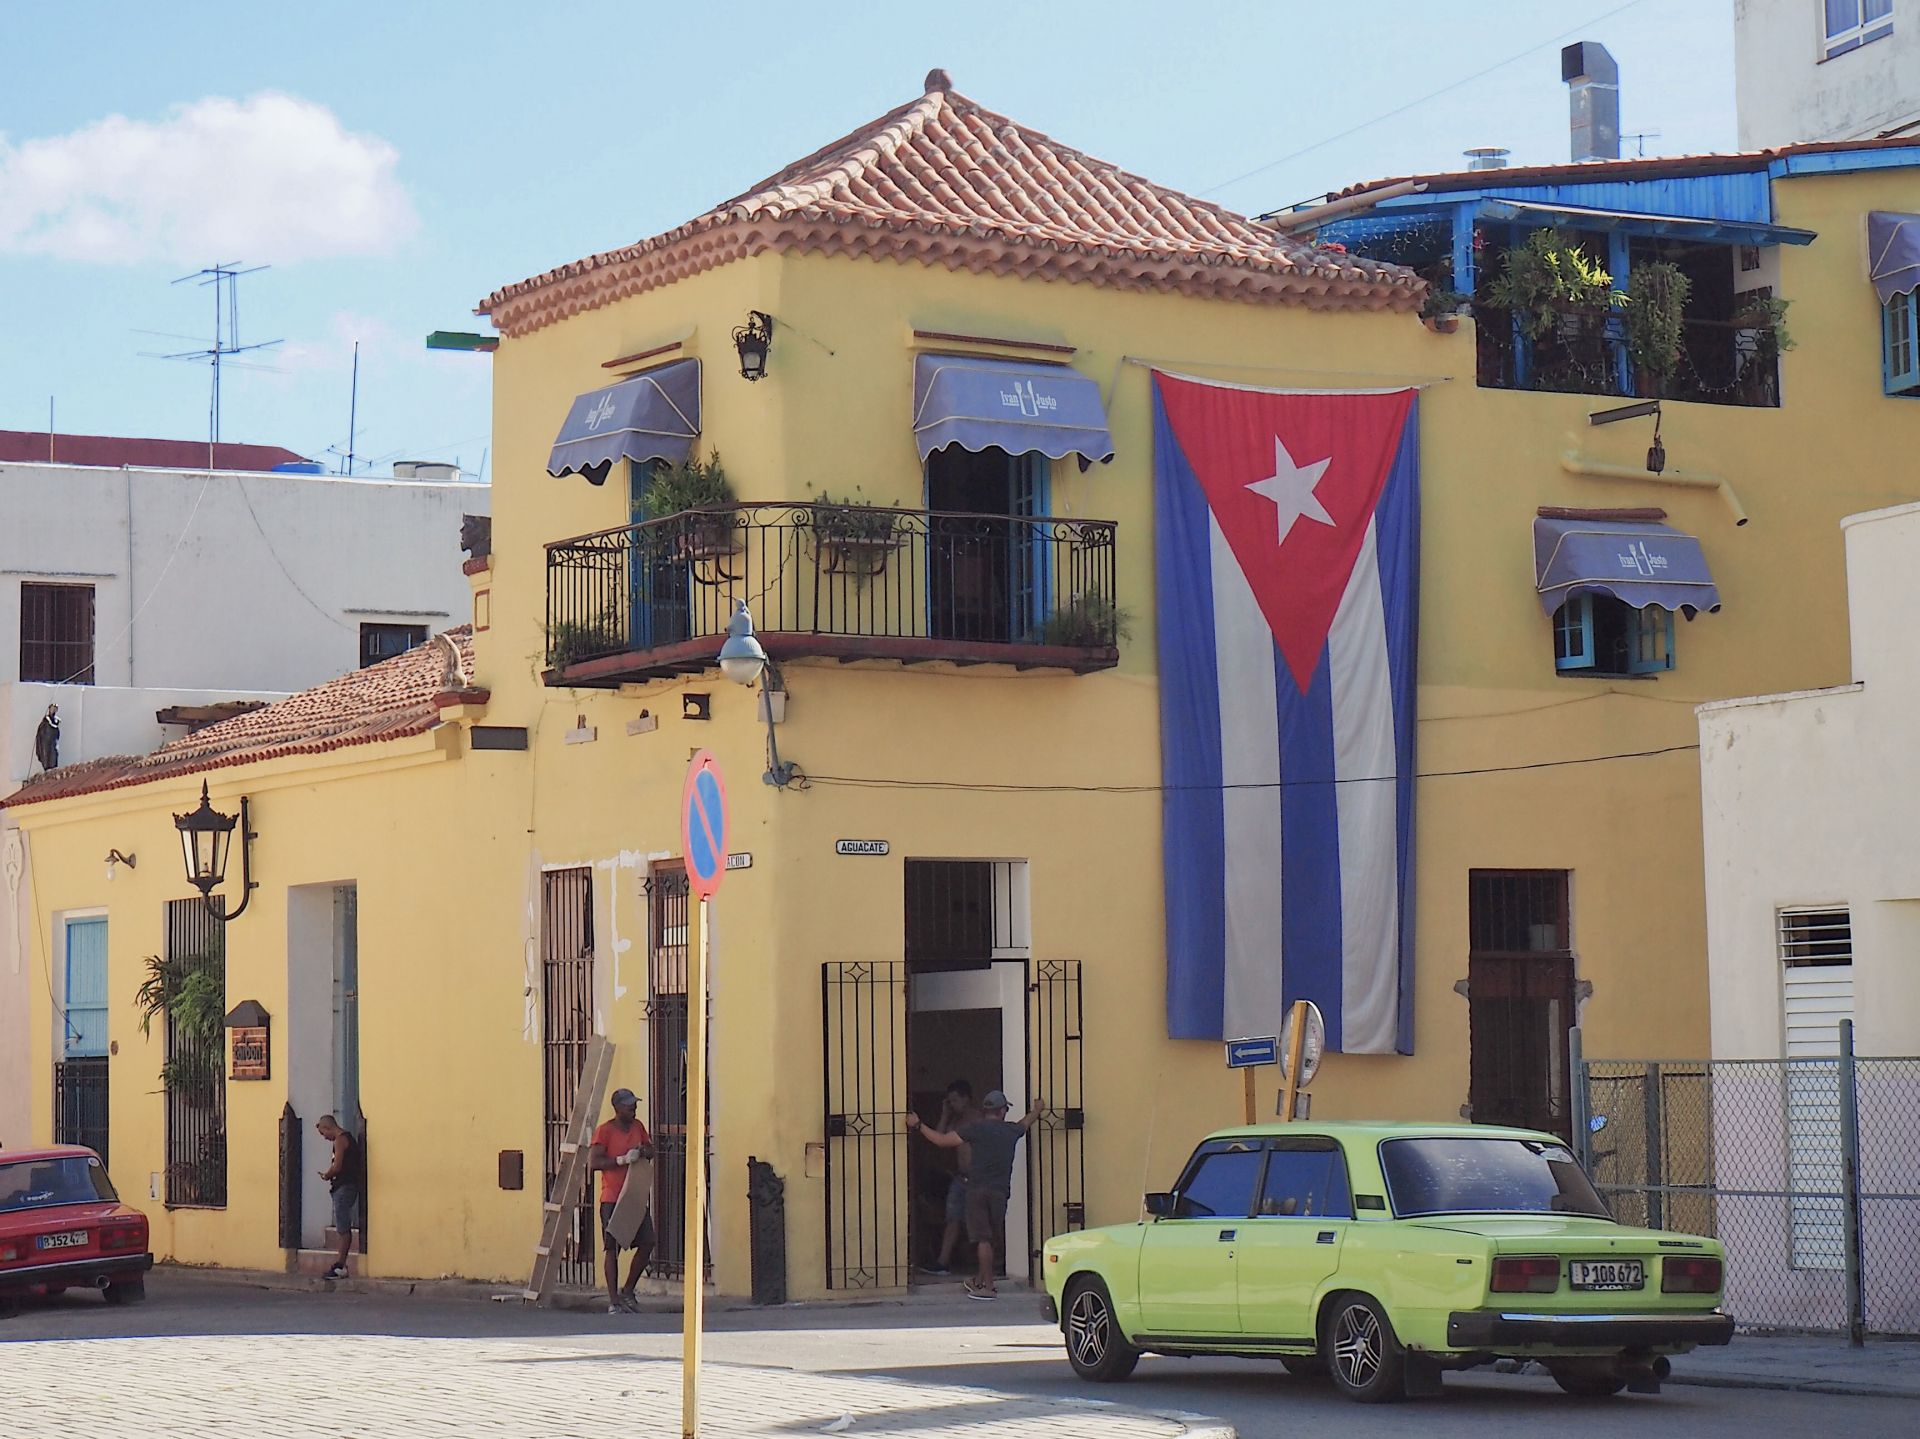 Image of Cuban flag against a yellow house in Havana